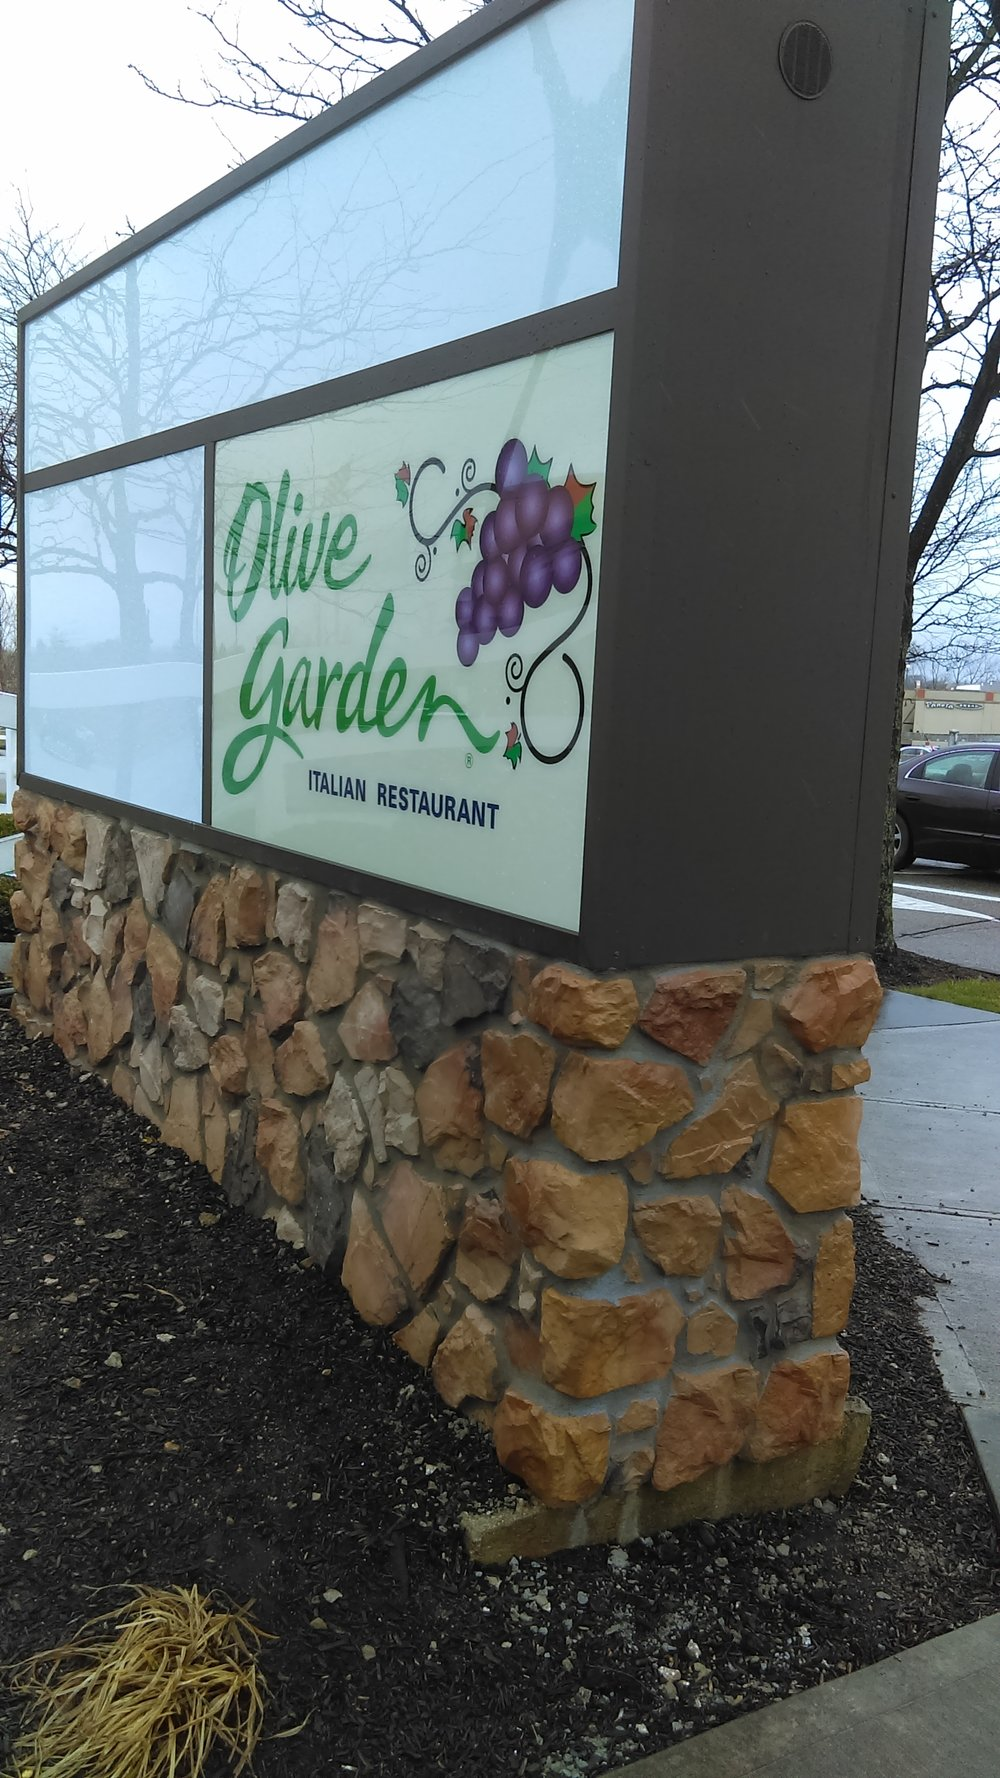 Remodeled the sign and stone pedestal for this Olive Garden after a car accident.